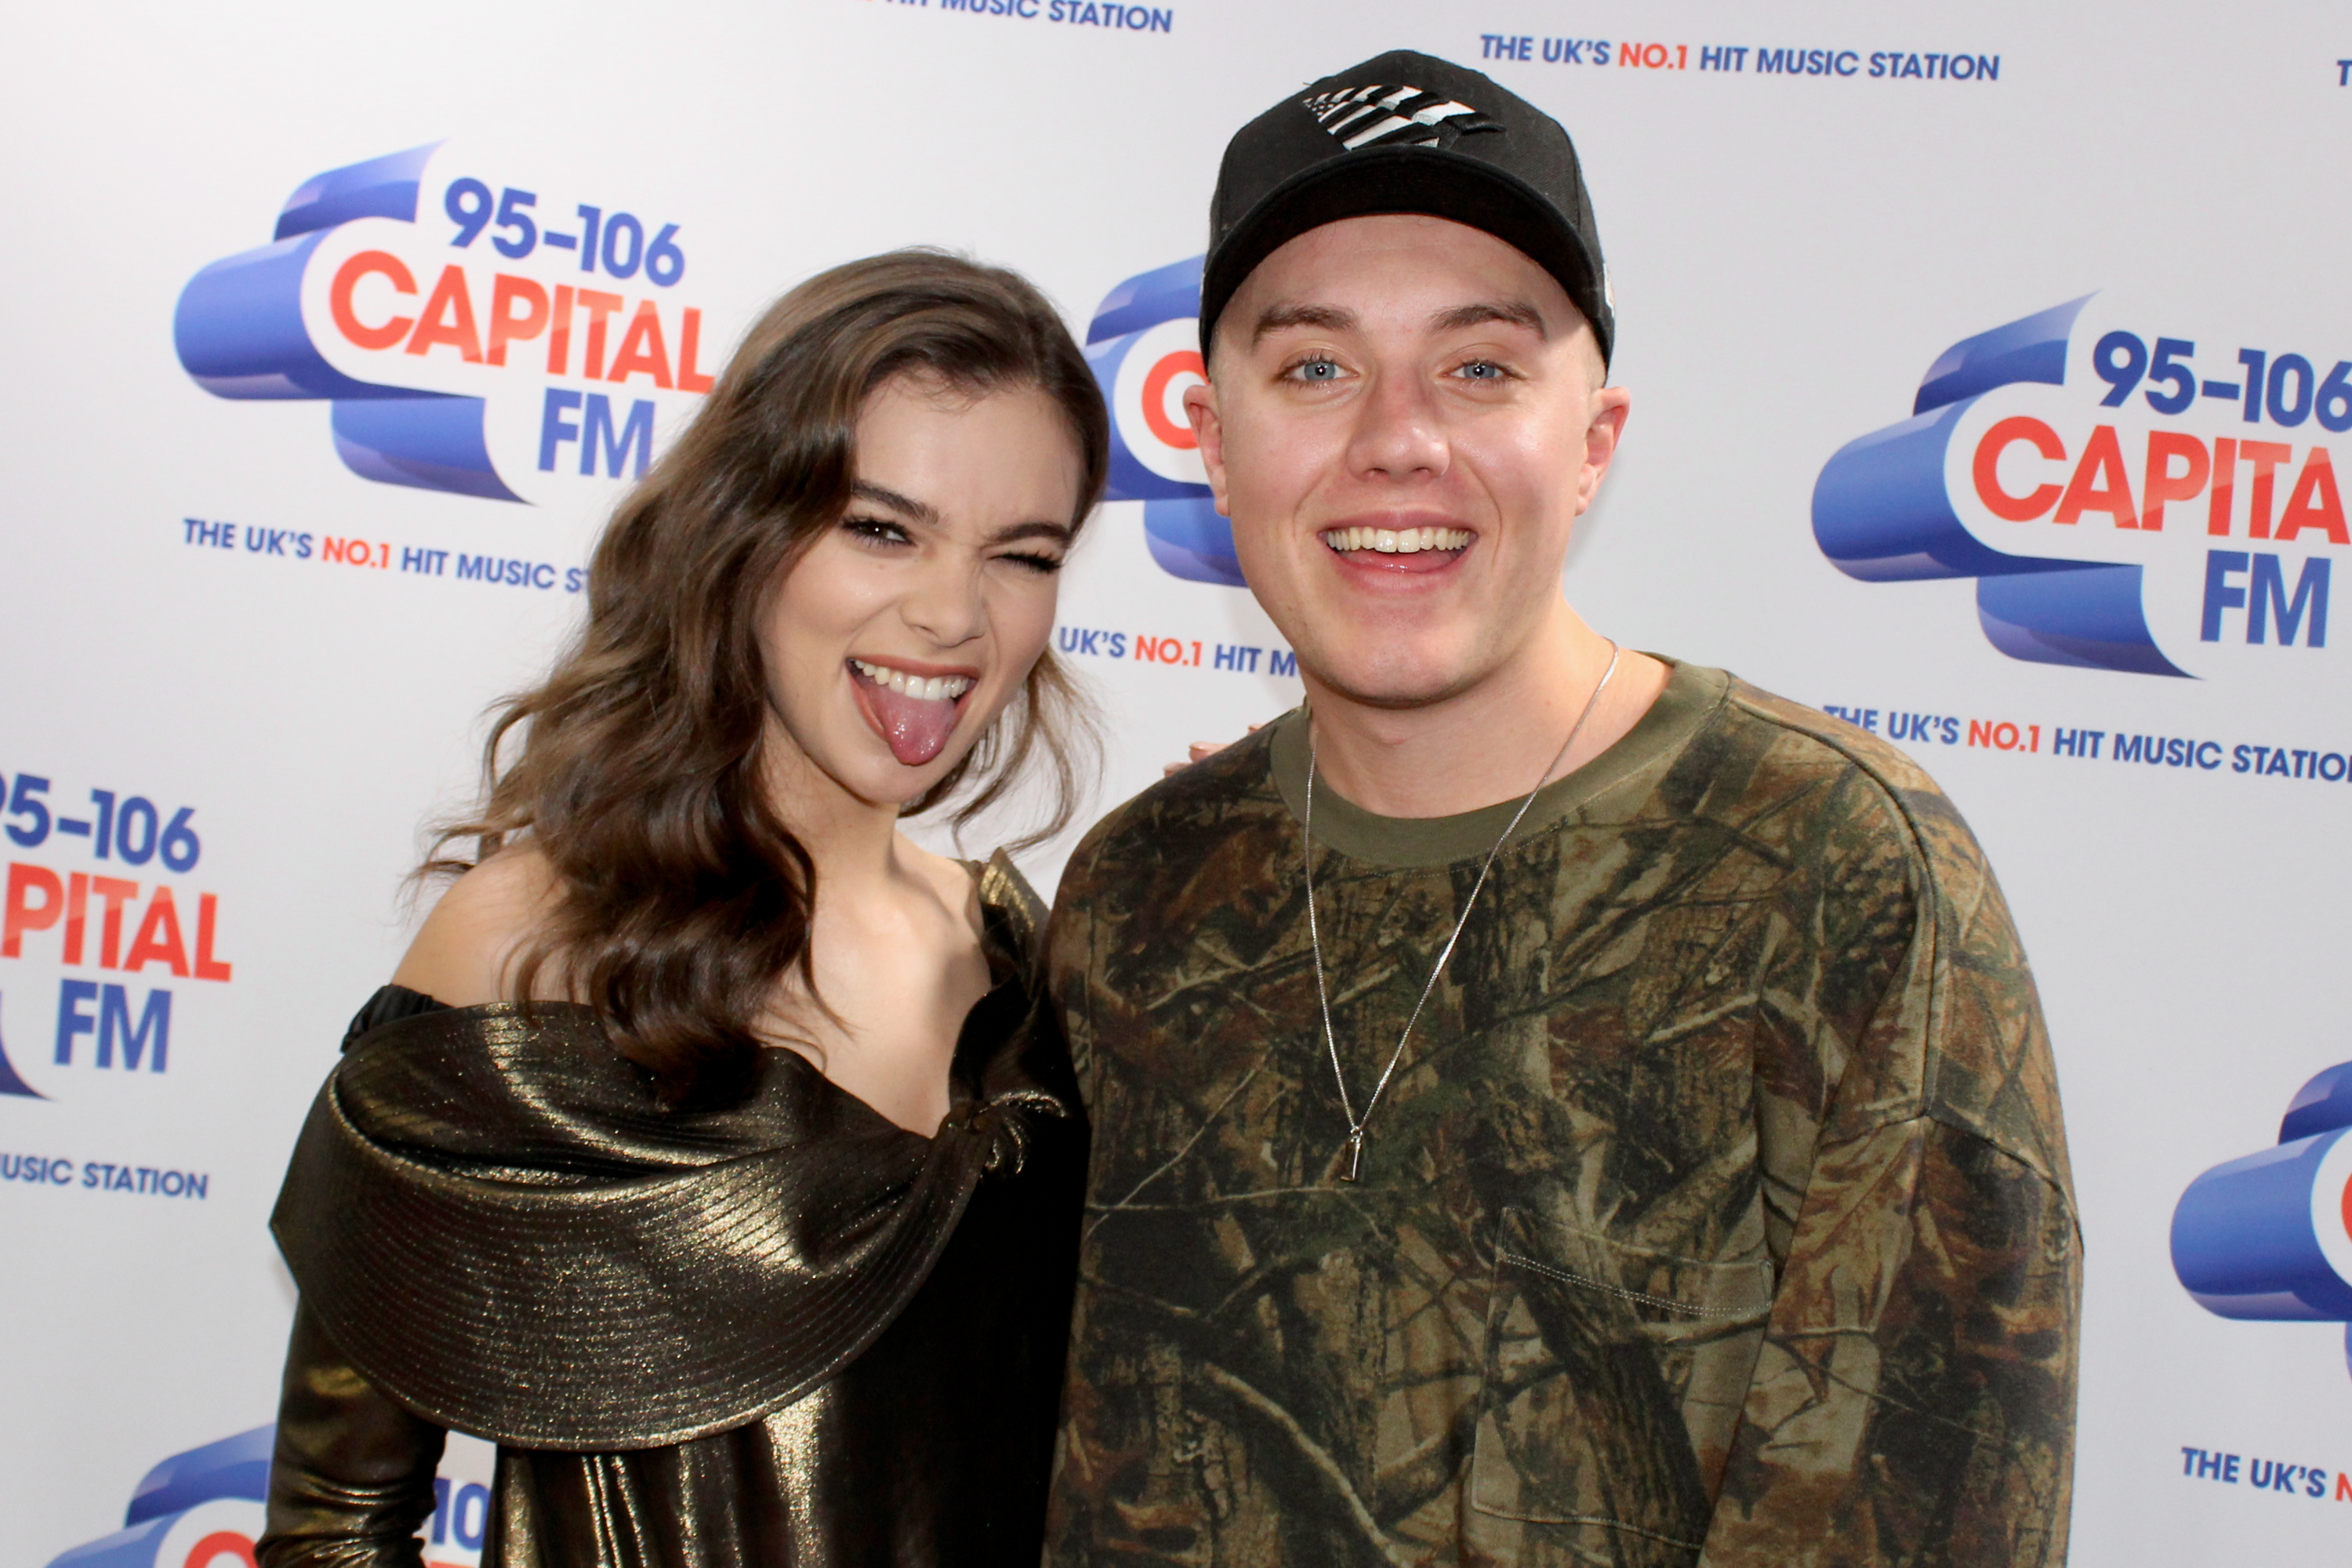 Hailee Steinfeld on Capital Breakfast Roman Kemp